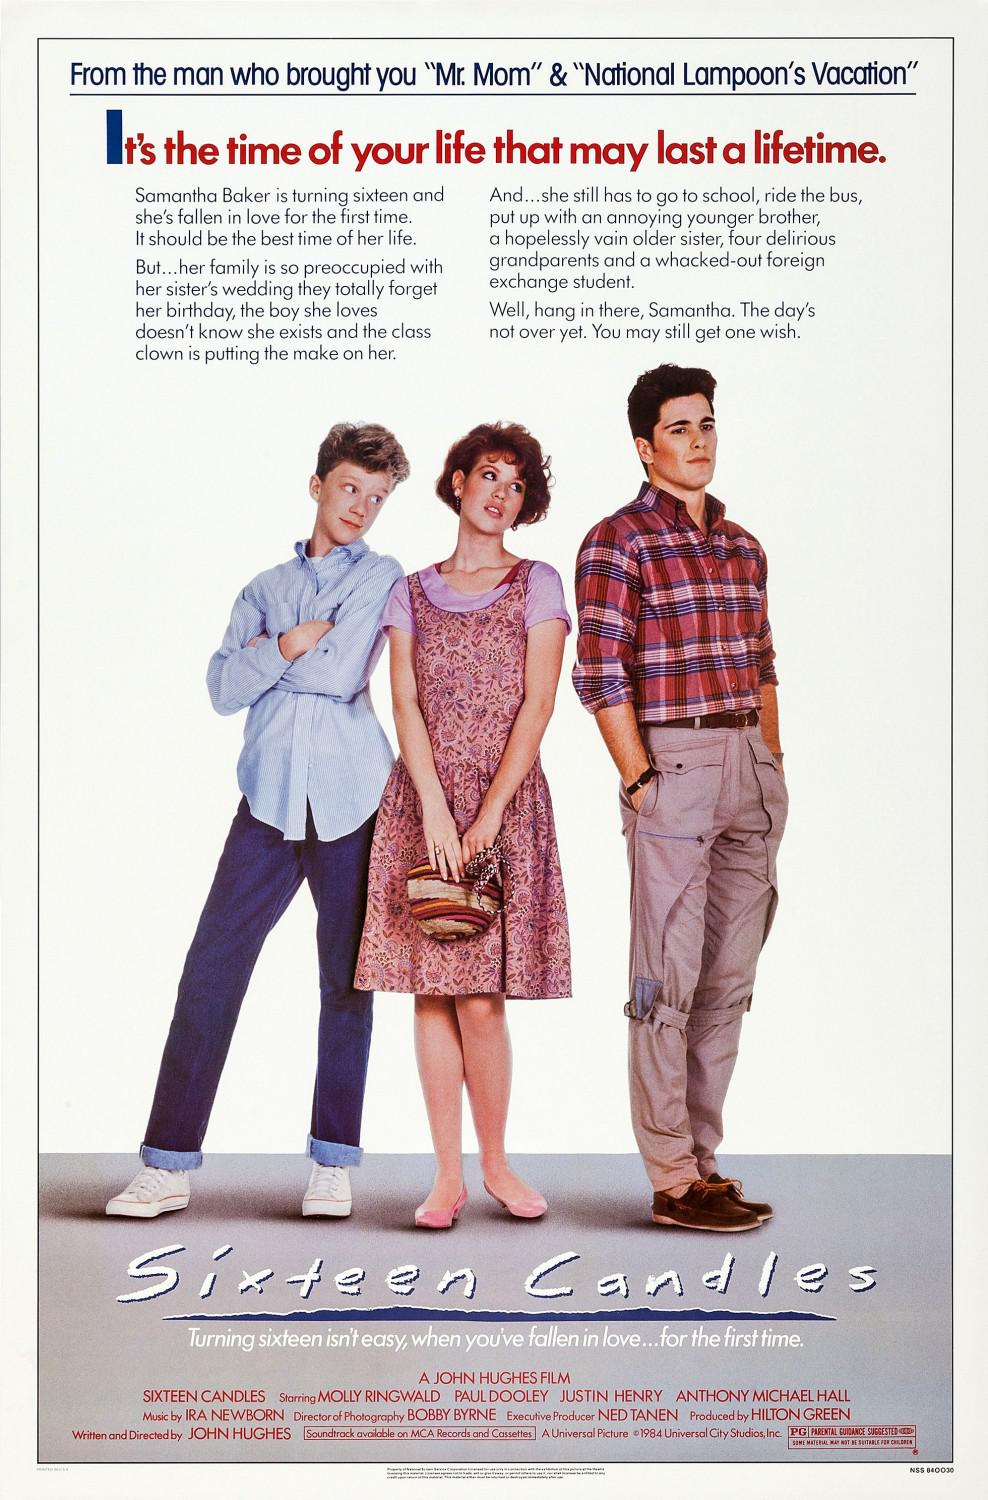 Sixteen Candles - it's the time of your life that may last a lifetime - Turning sixteen isn't easy, when you're fallen in Love ... for the first time